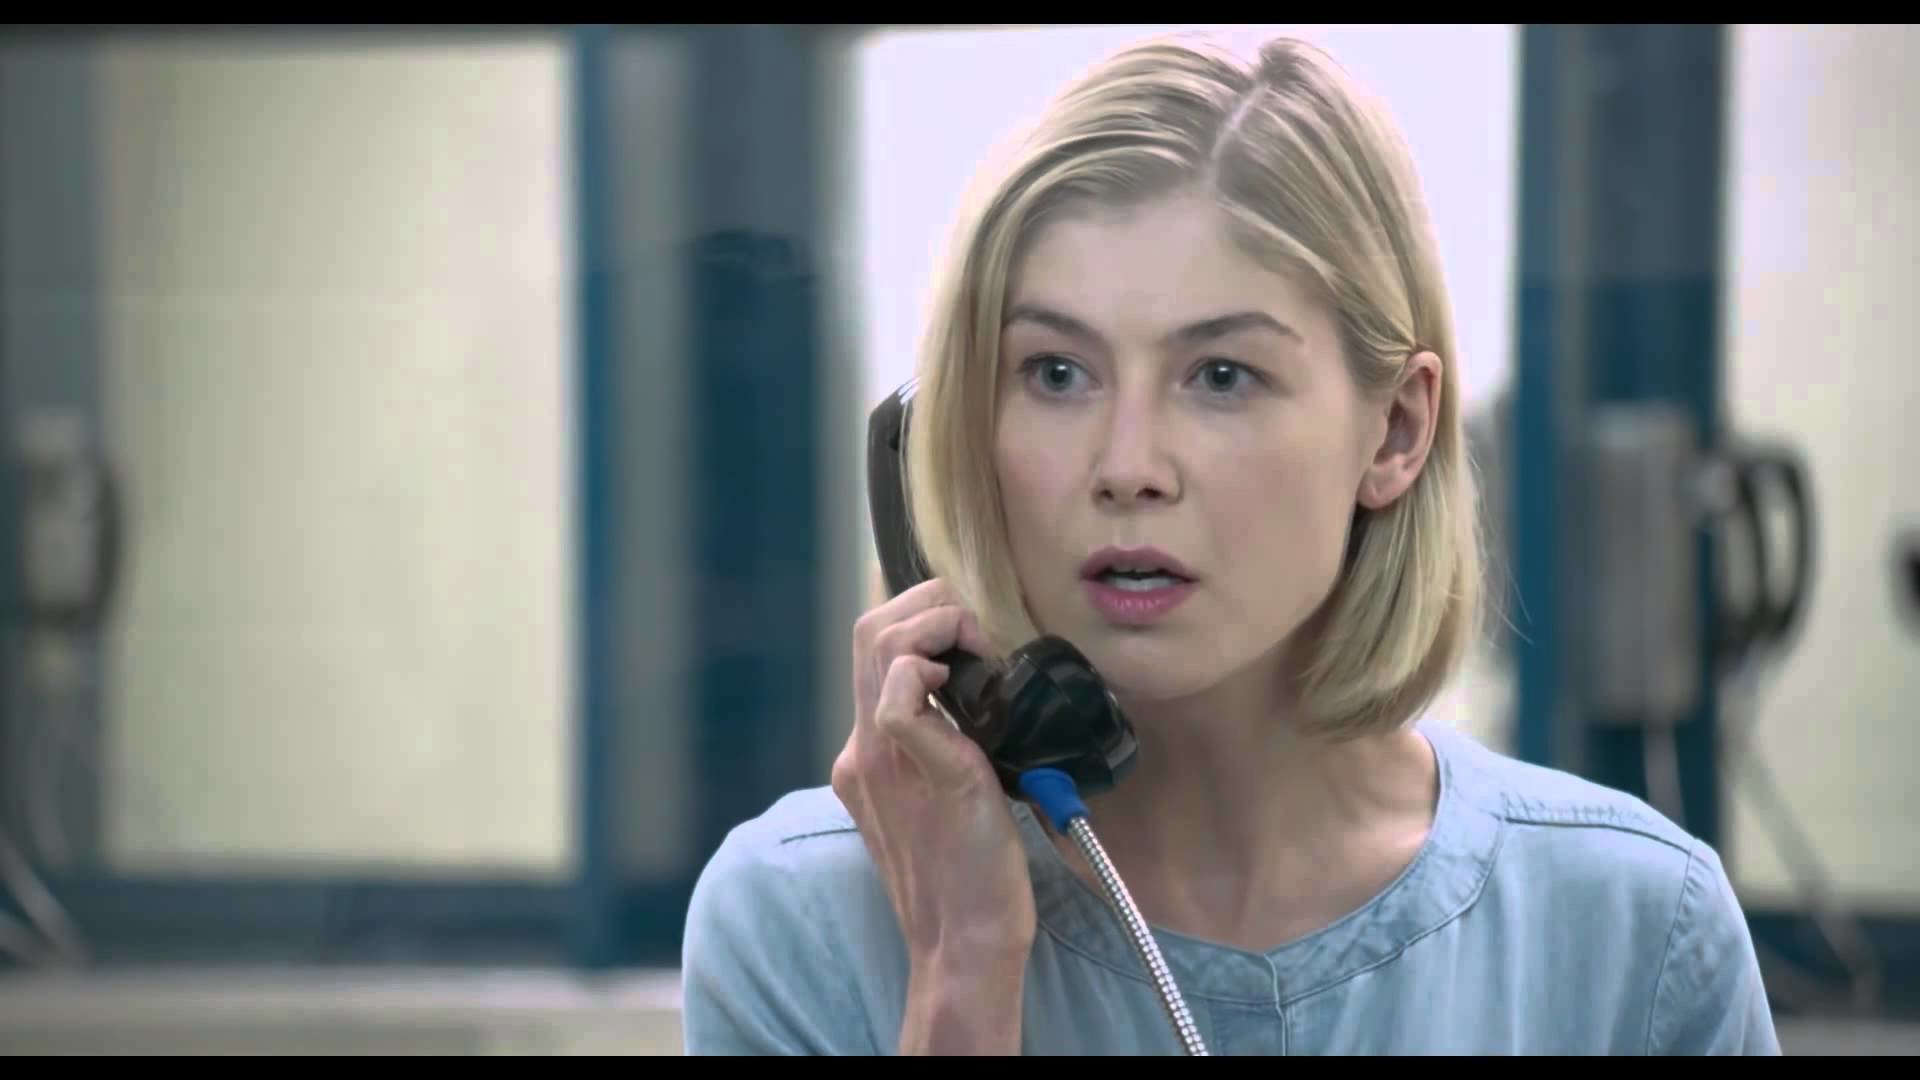 Download full hd 1080p Rosamund Pike desktop wallpaper ID:378956 for free